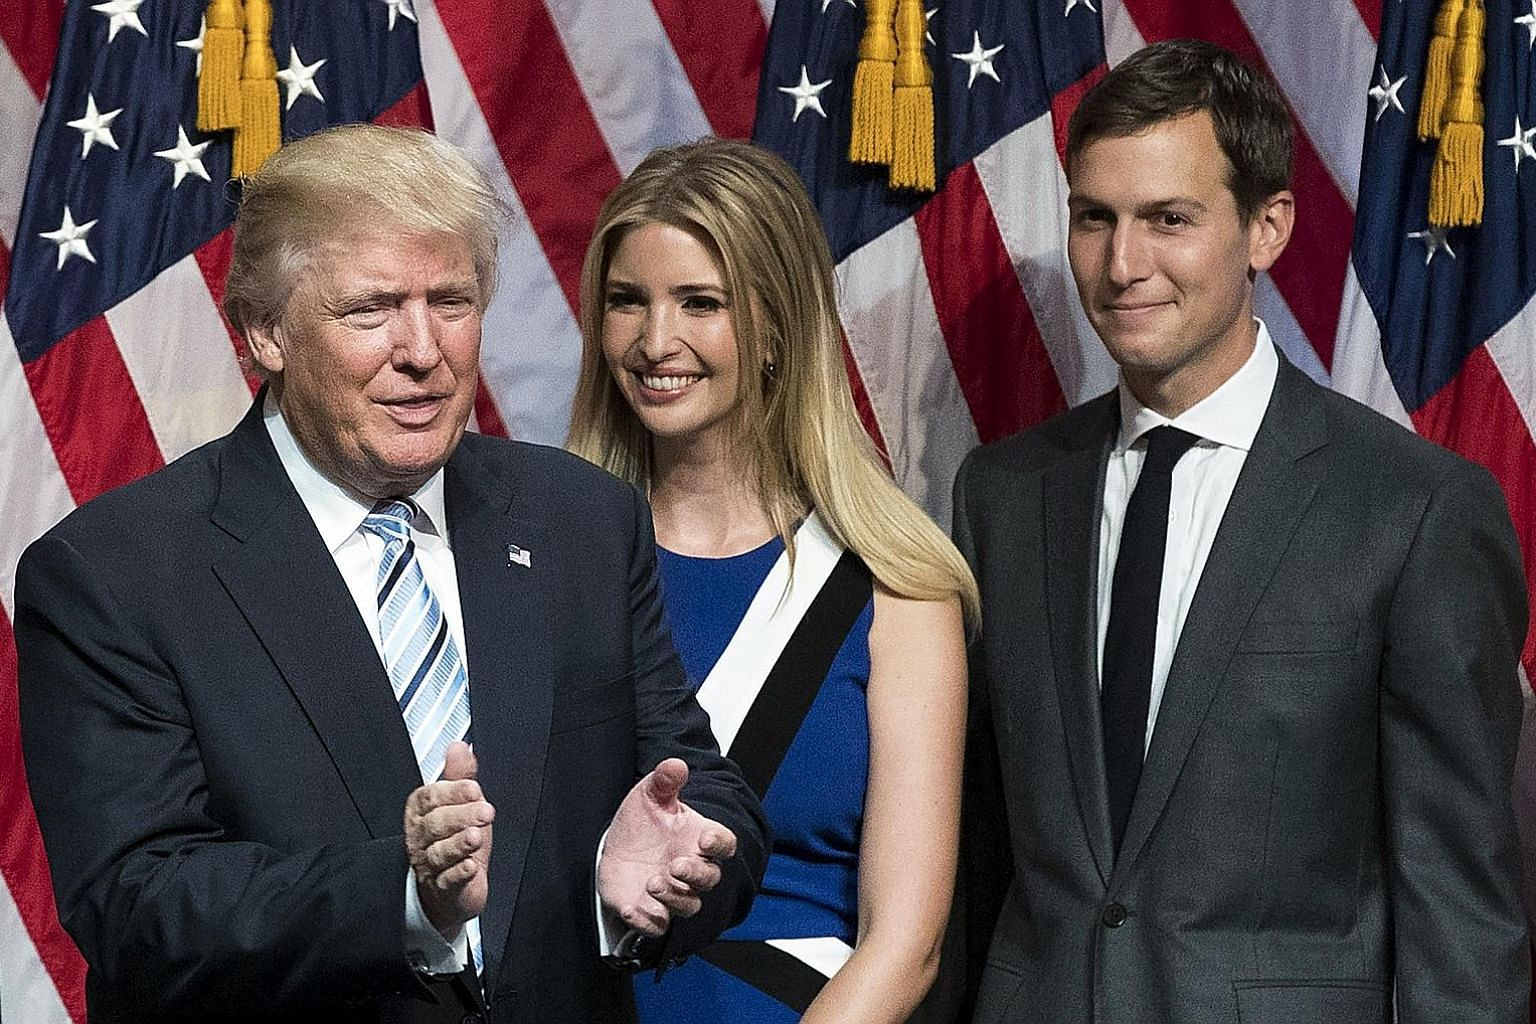 Mr Trump with his daughter Ivanka and son-in-law Jared Kushner. Mr Kushner has such a thin track record of public service that it's hard for Americans to have much sense of what his convictions are.